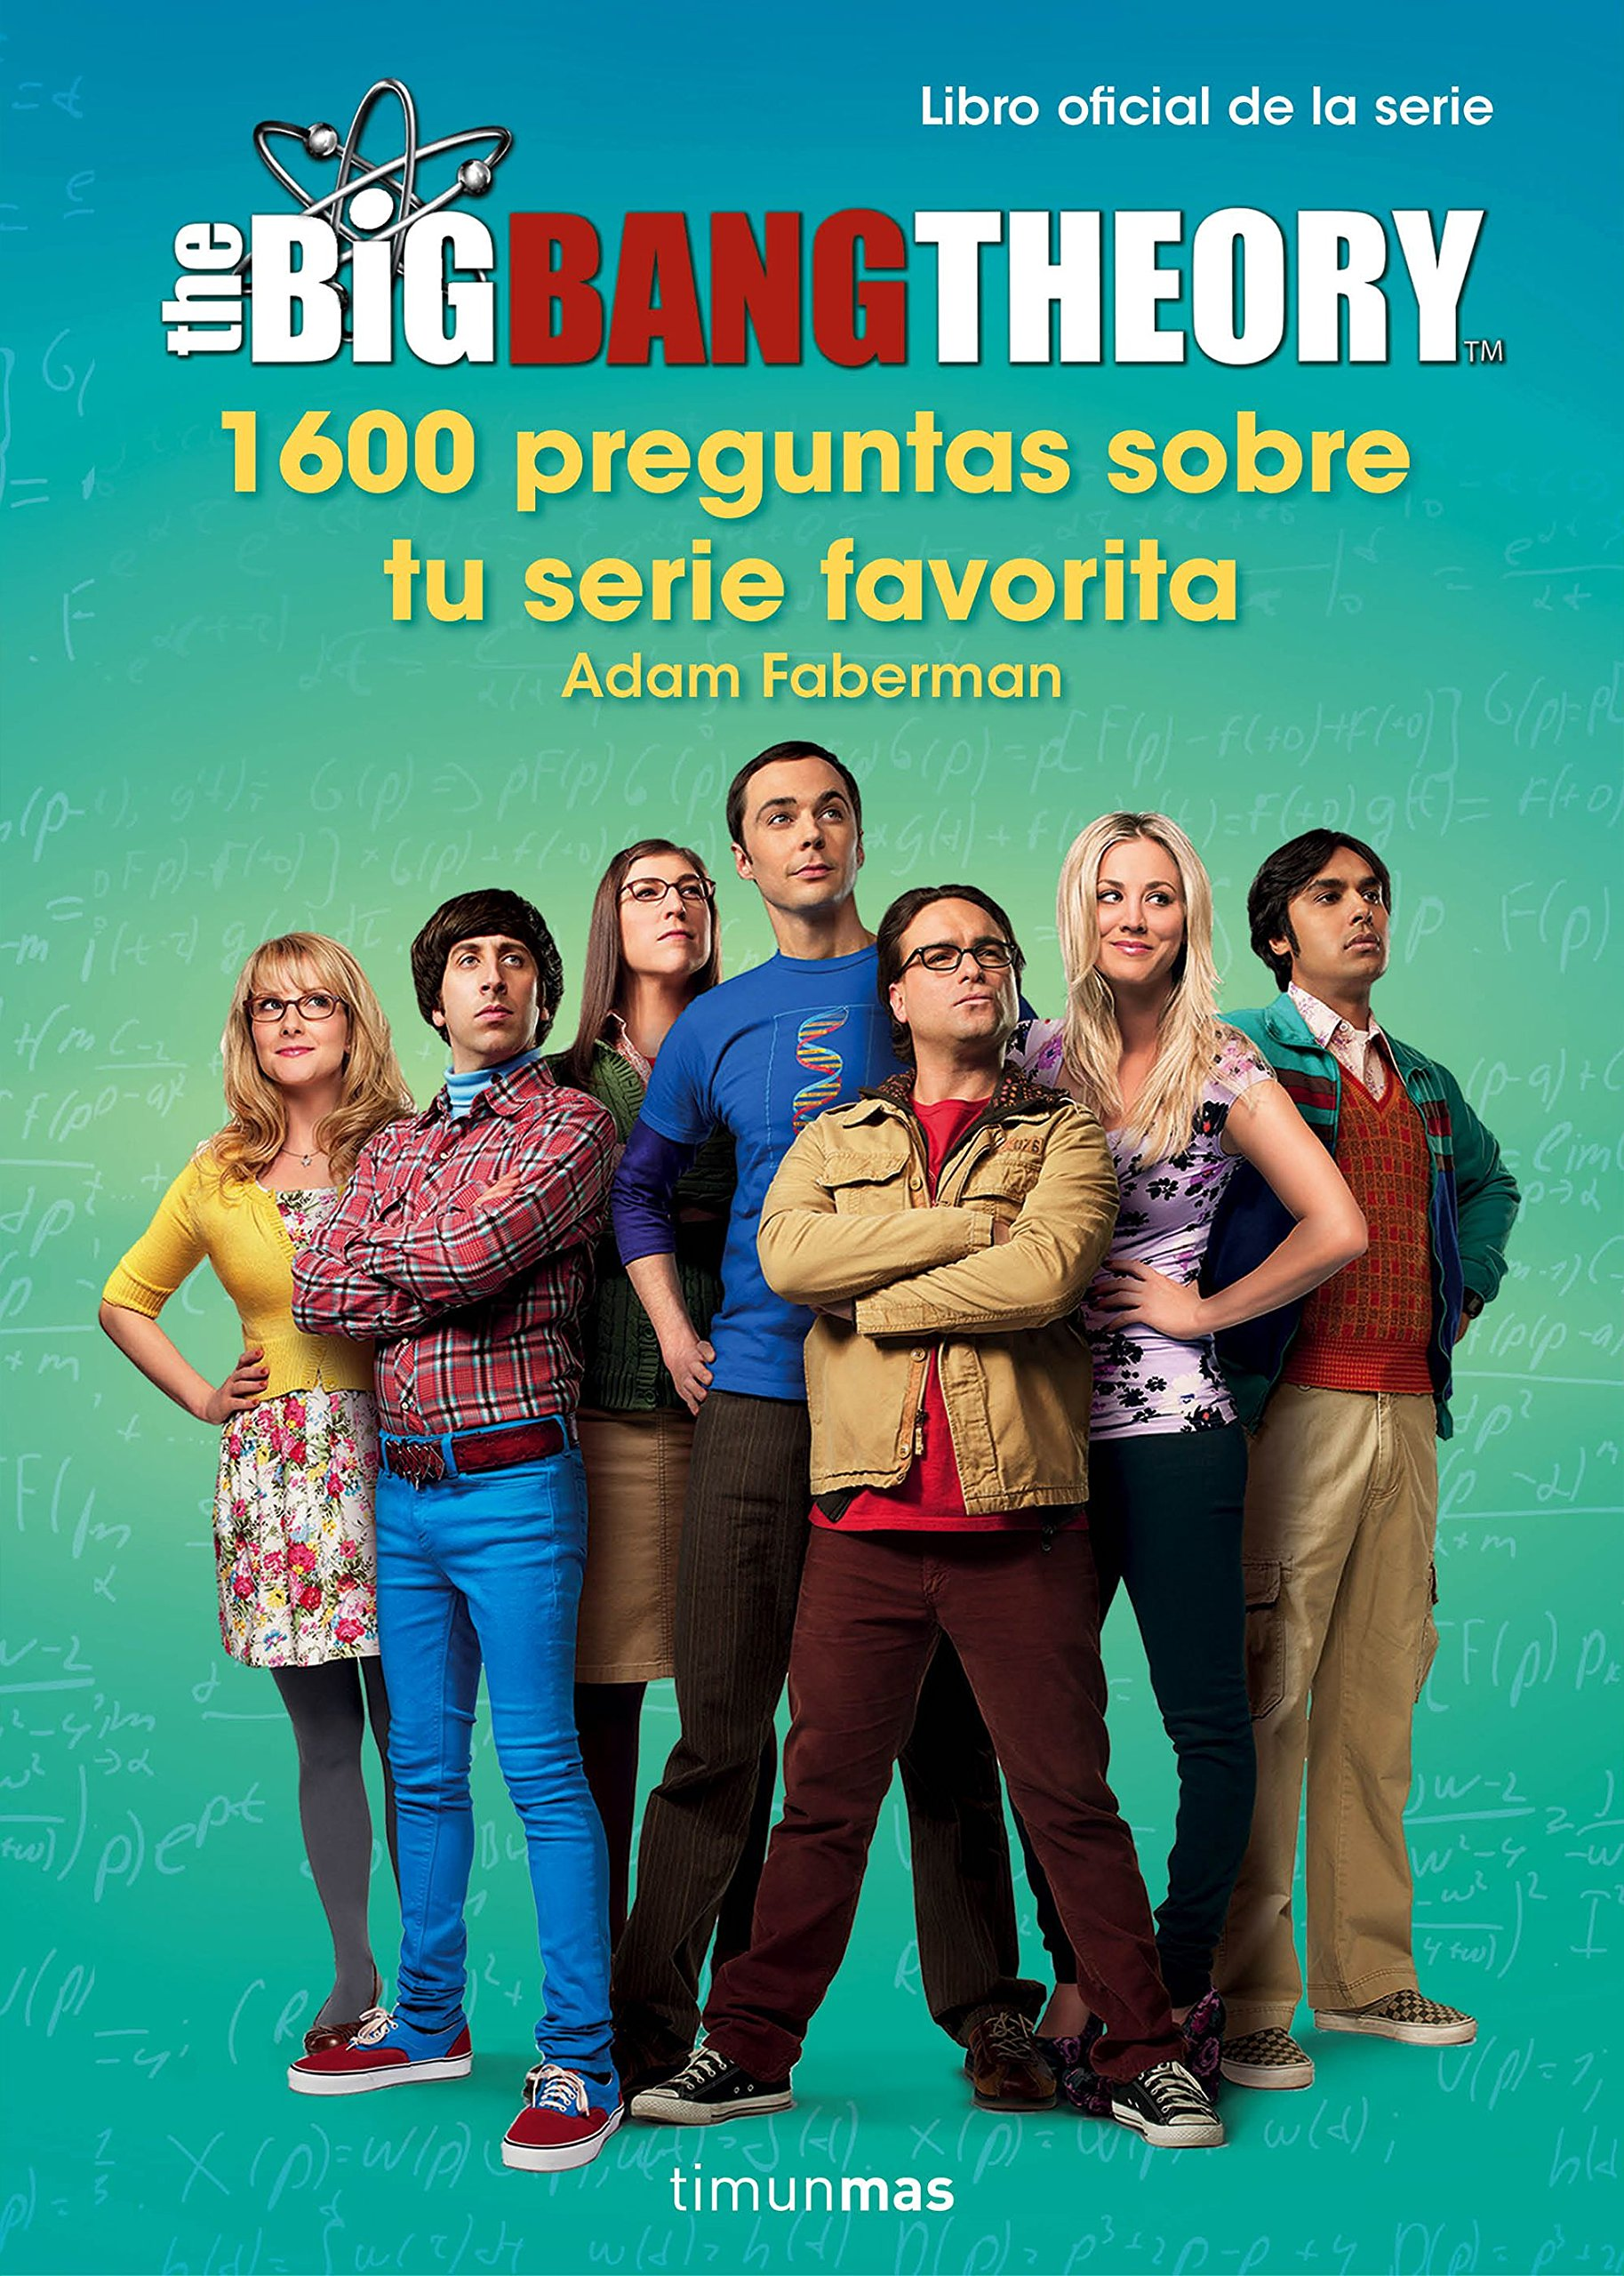 The Big Bang Theory. 1.600 preguntas sobre tu serie favorita Series y Películas: Amazon.es: Faberman, Adam, Saitó, Simón: Libros